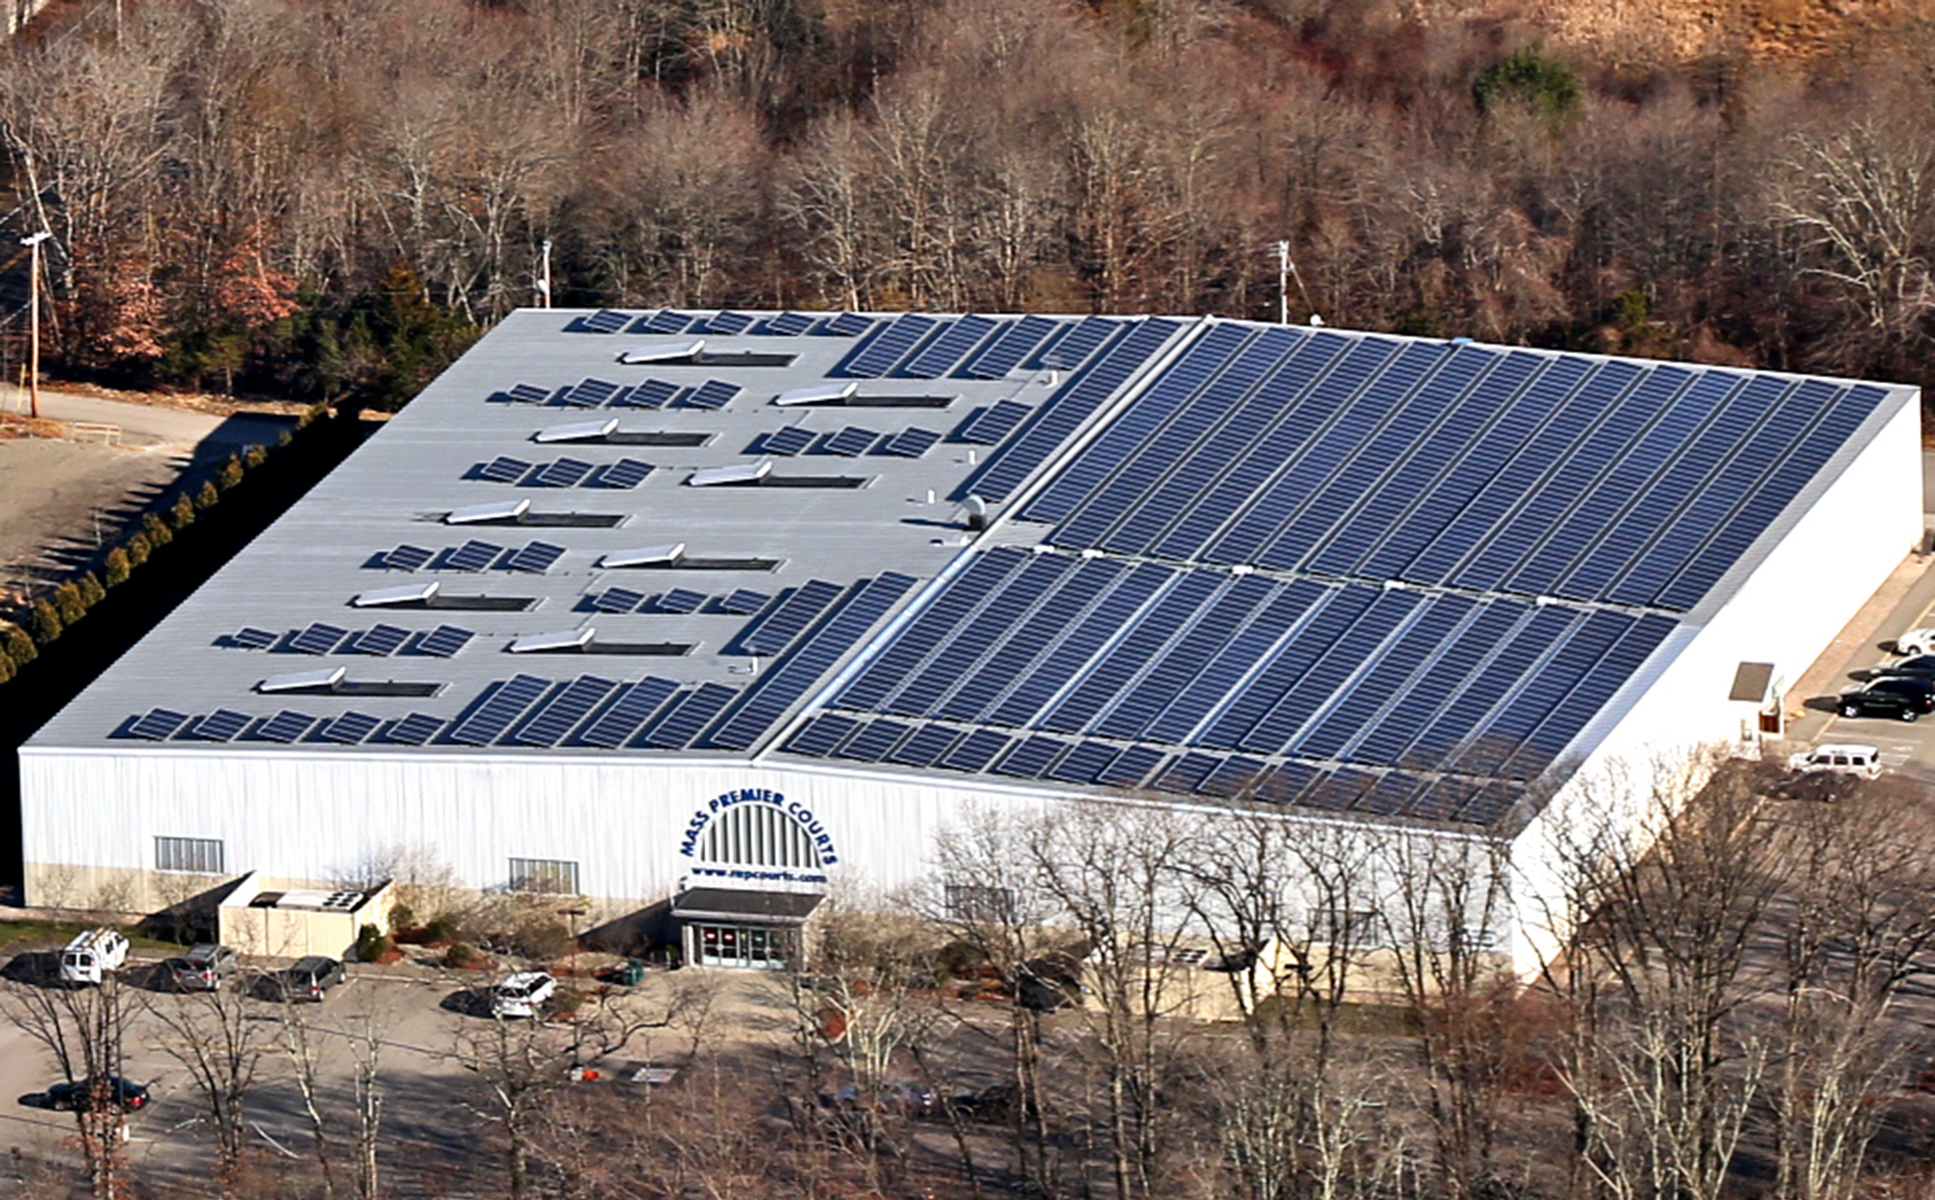 The 389.40kW solar system is comprised of 1320 solar panels